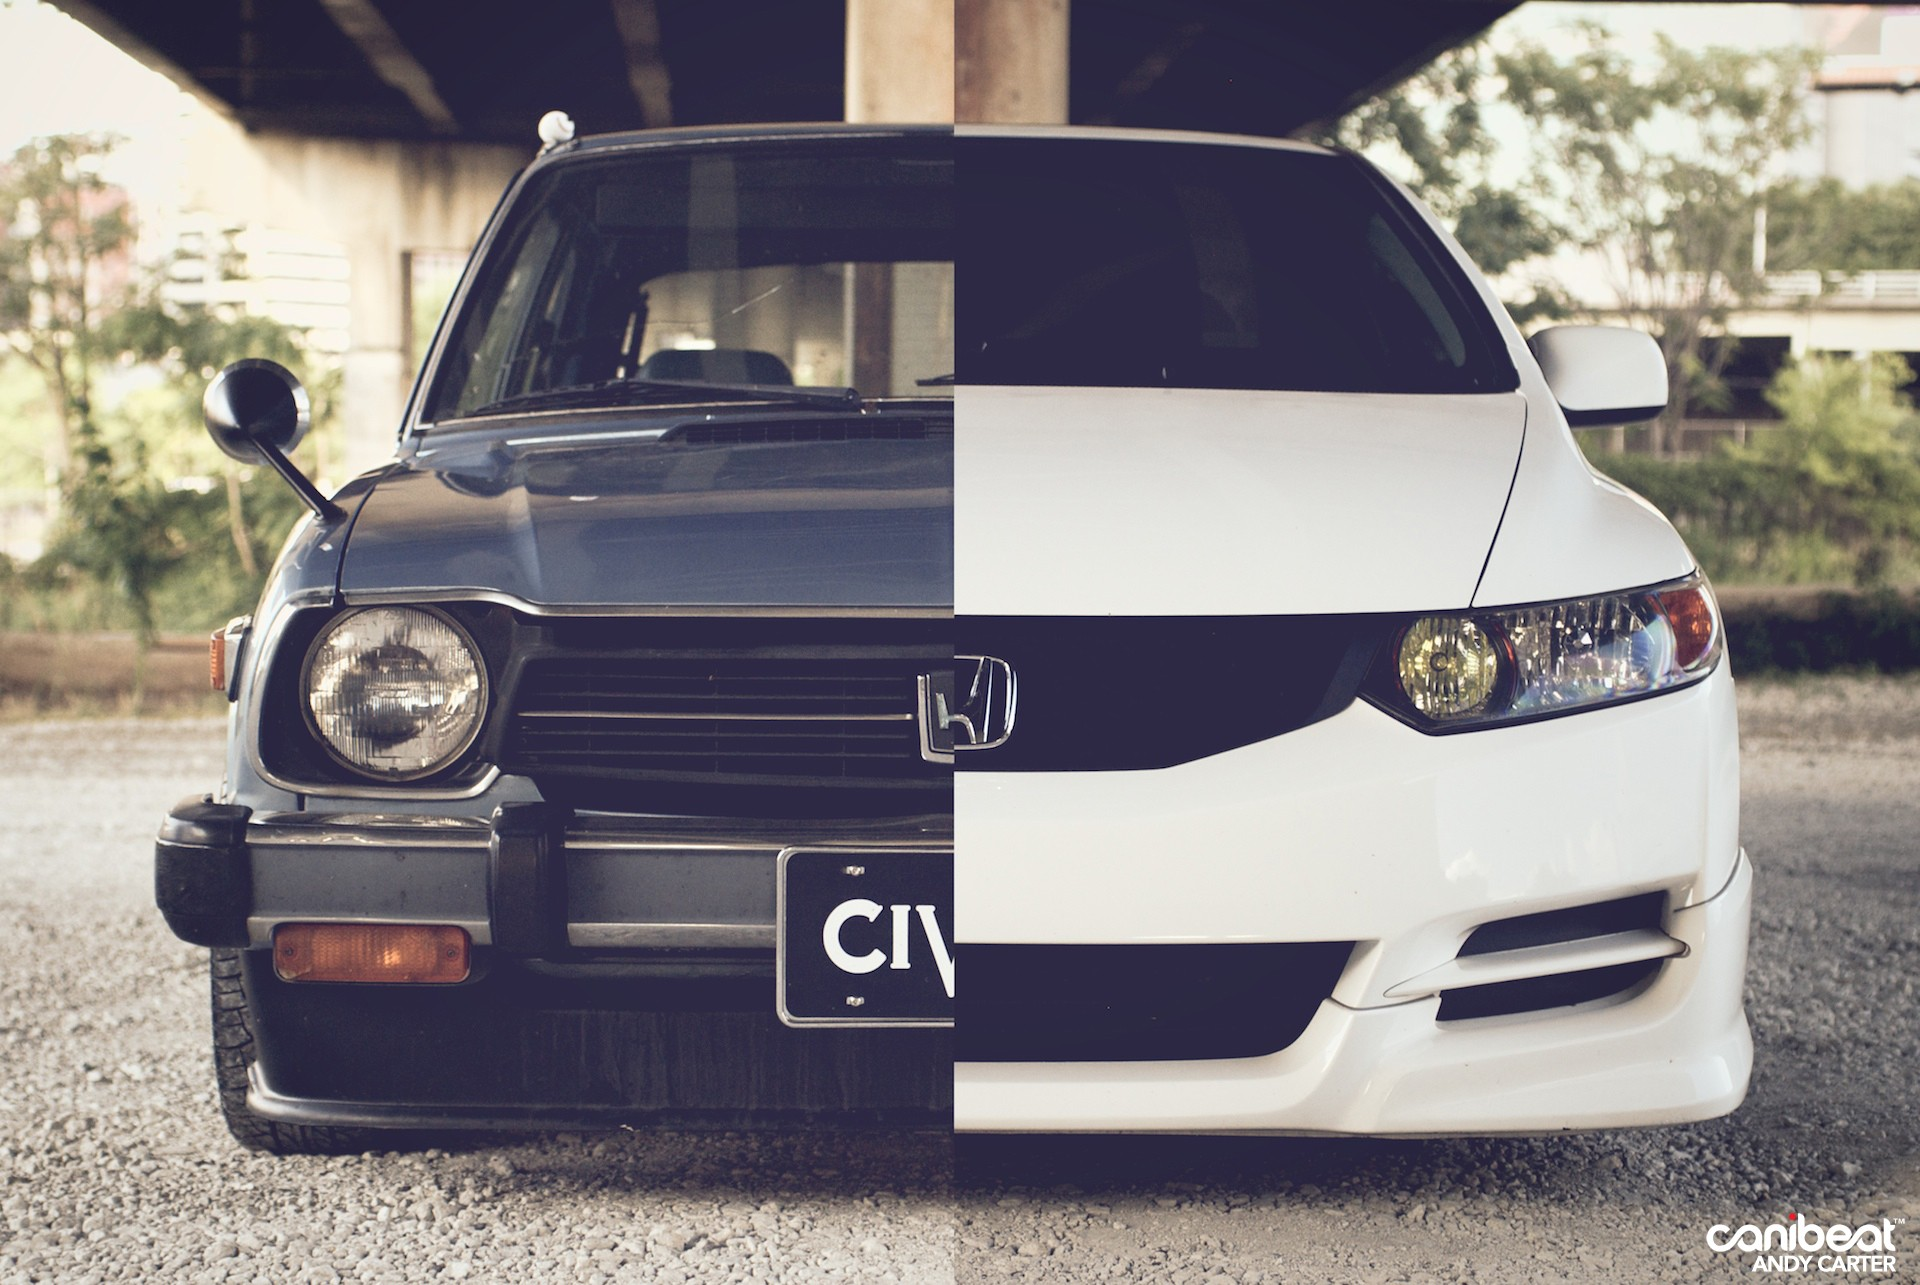 12 Honda Civic Hd Wallpapers Backgrounds Wallpaper Abyss